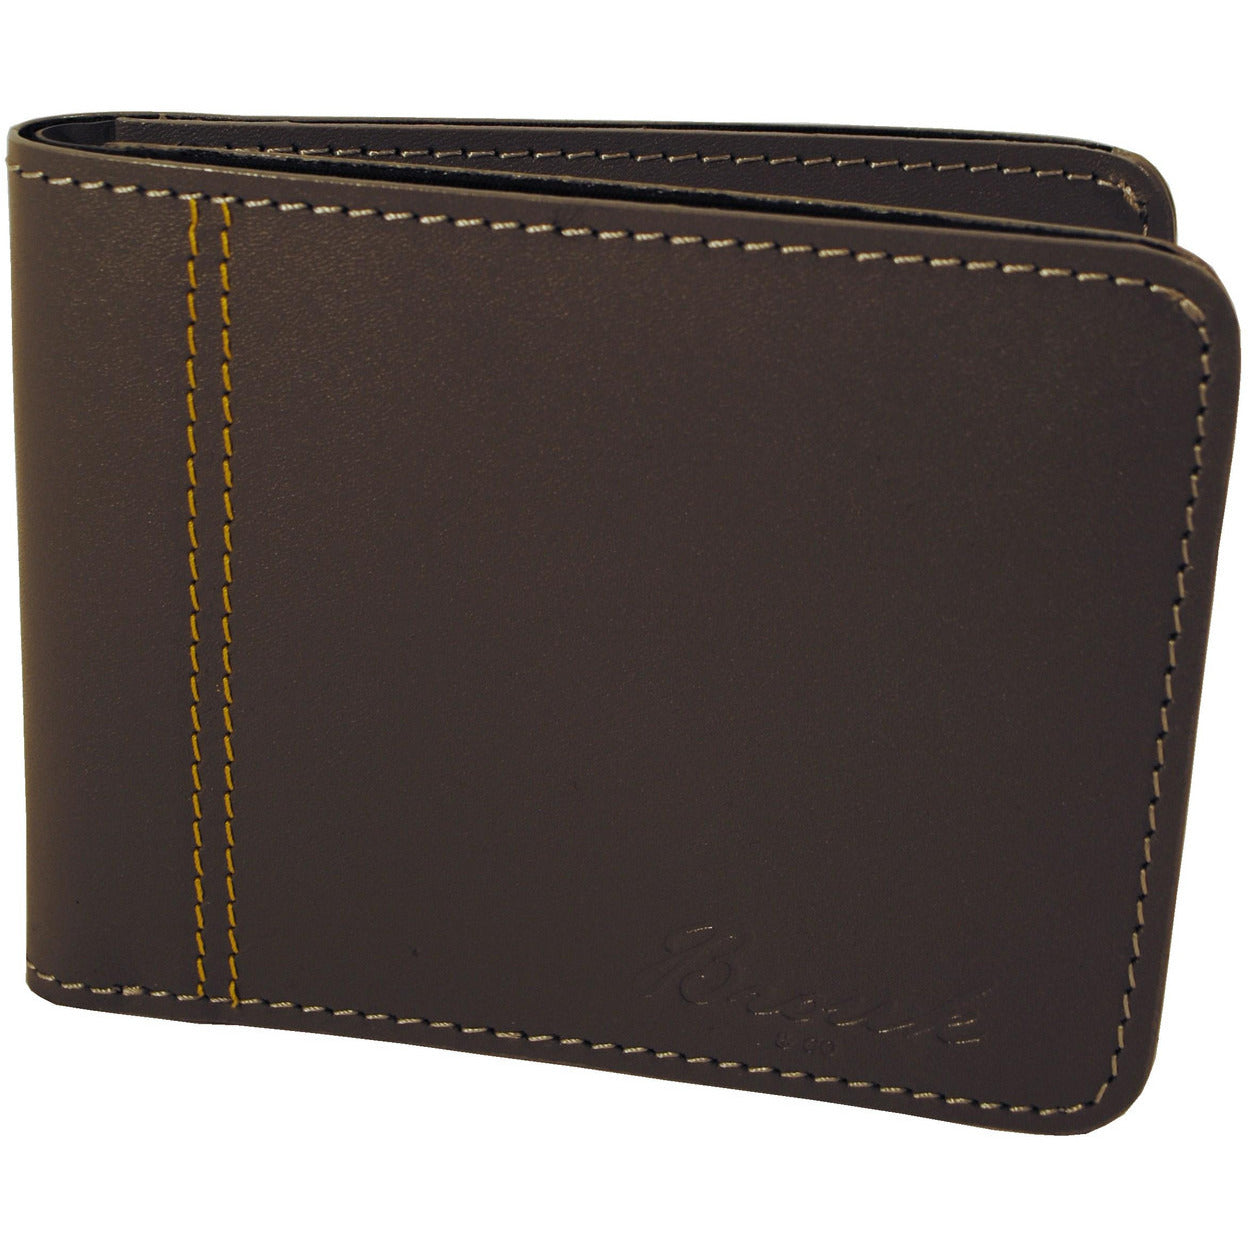 D Checkbook Wallet Split STOPPER Black Grey Cream Distressed Snap Closure